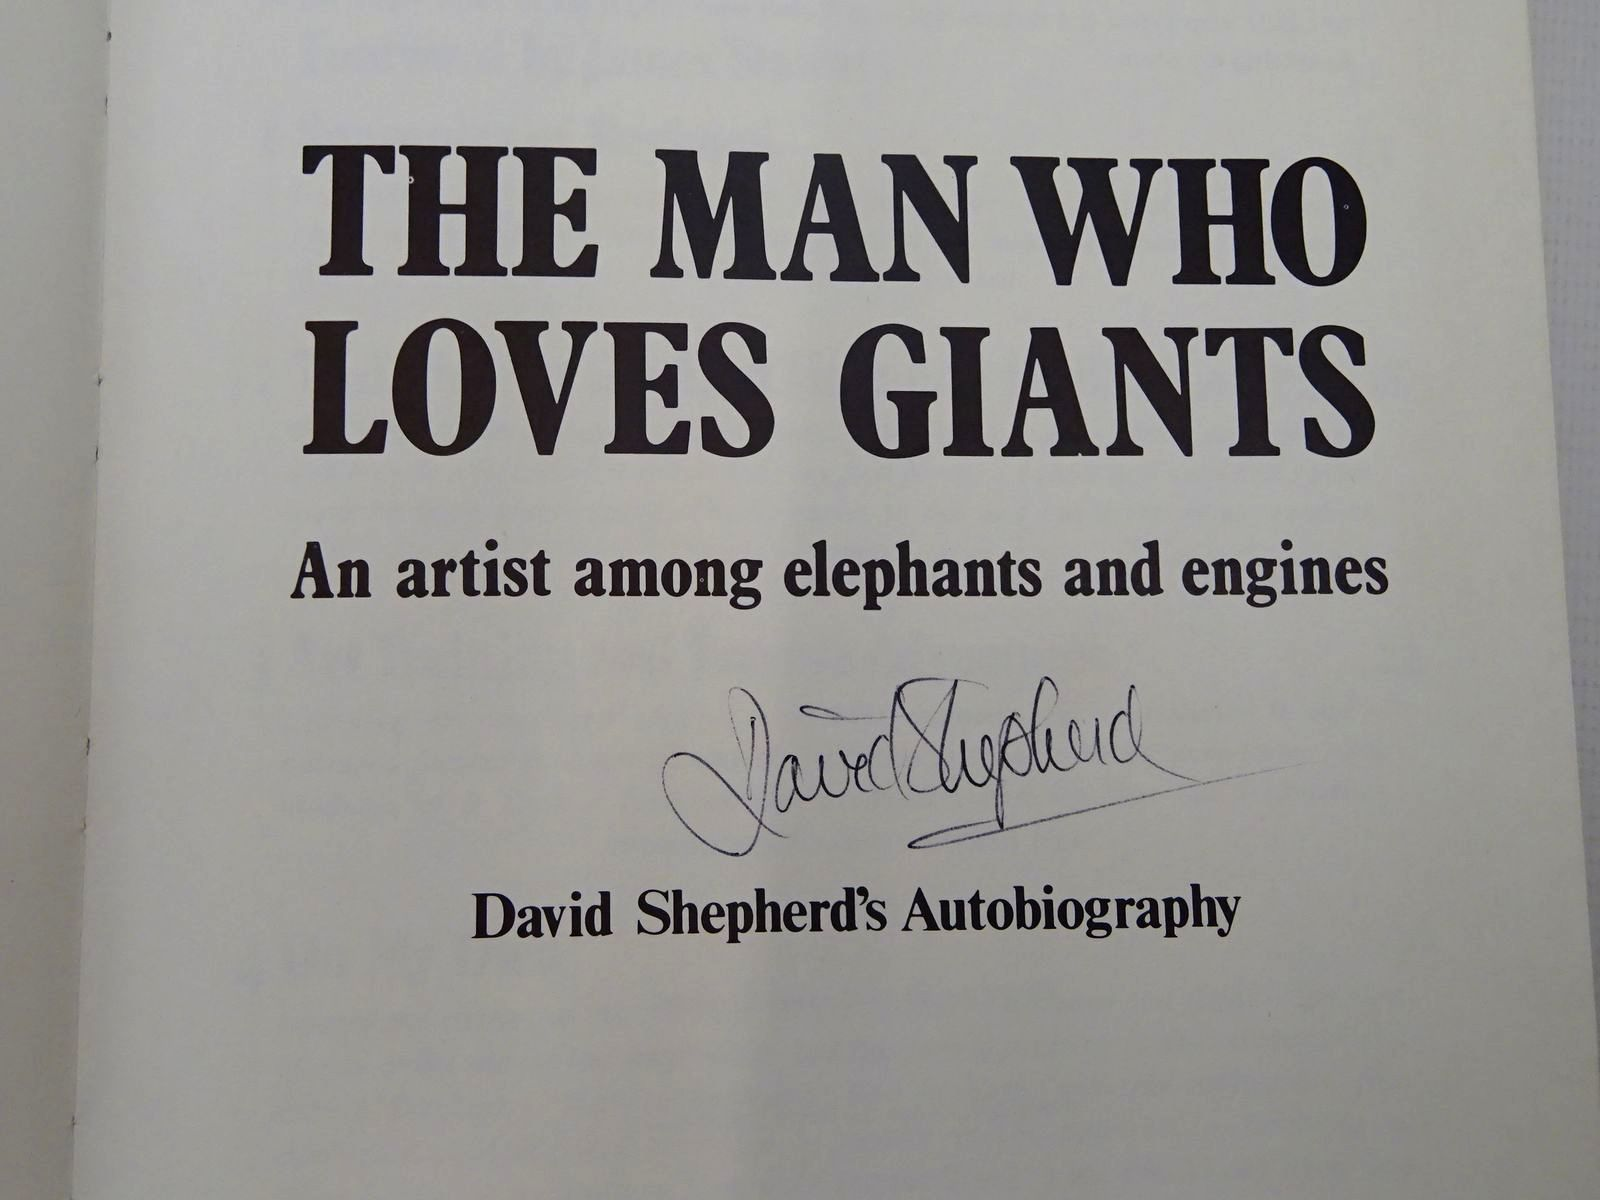 Photo of THE MAN WHO LOVES GIANTS written by Shepherd, David illustrated by Shepherd, David published by Charles Scribner's Sons (STOCK CODE: 2126866)  for sale by Stella & Rose's Books